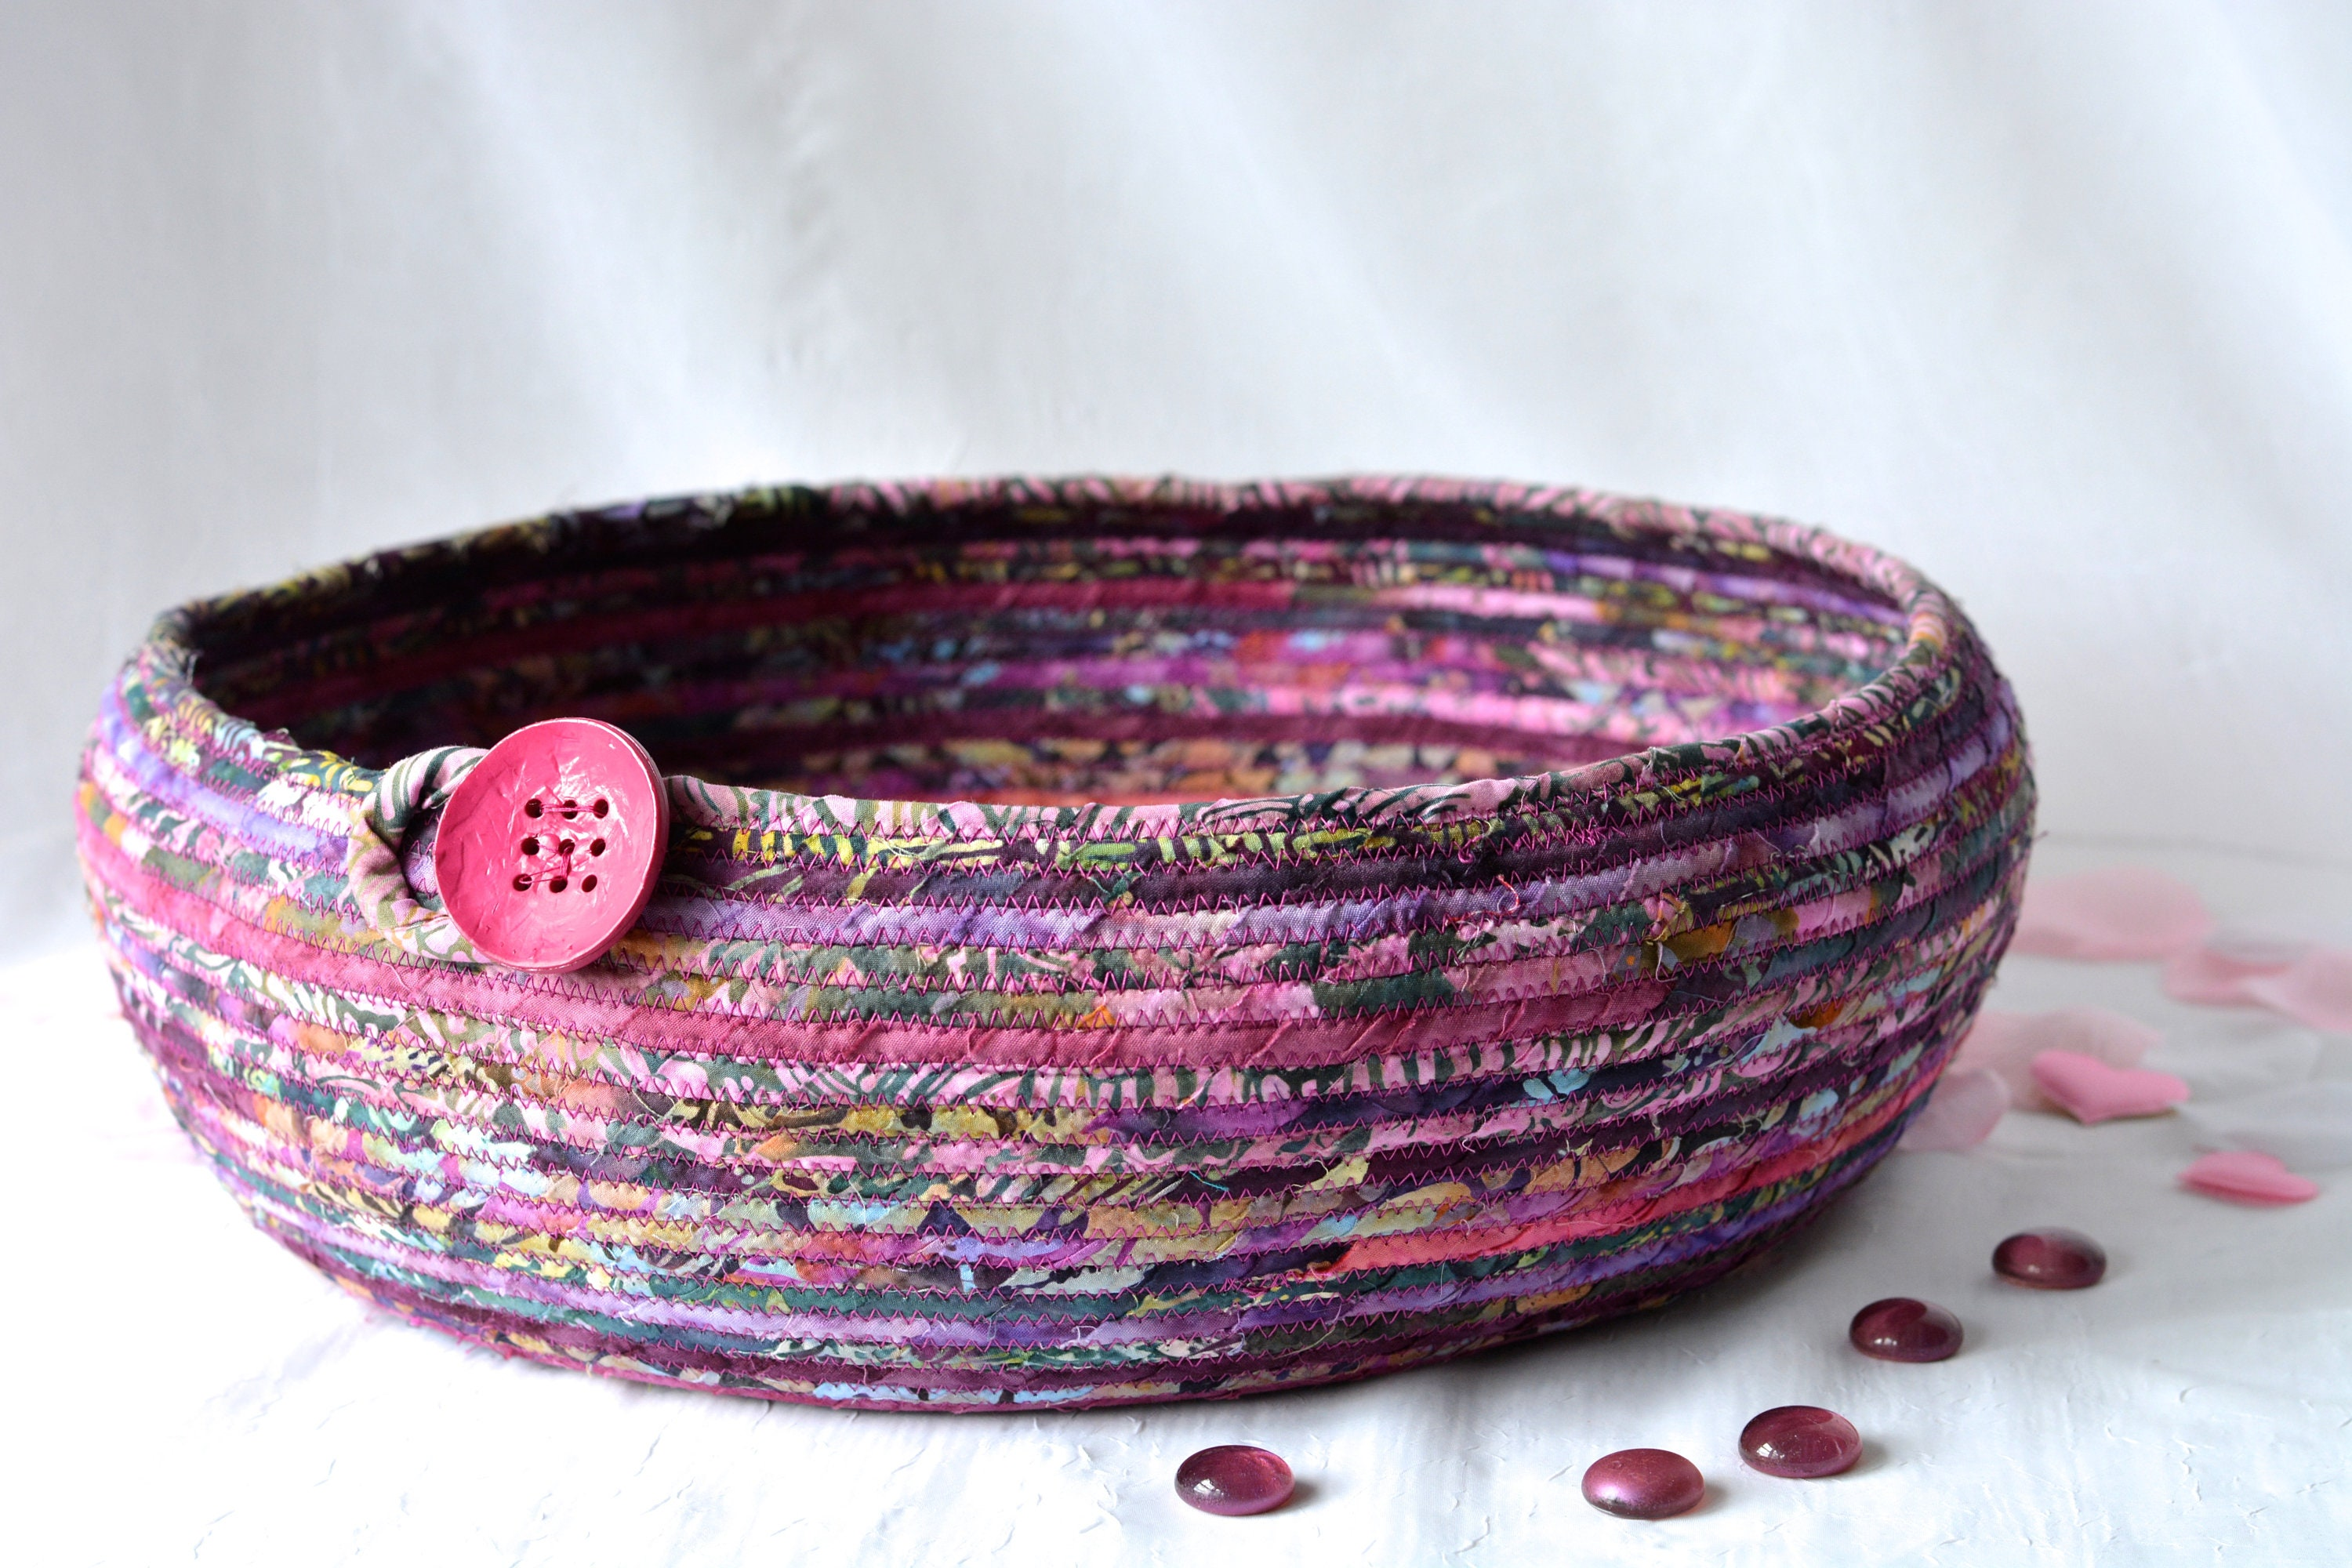 Mauve Fiber Art Basket Handmade Rope Bowl Farmhouse Batik